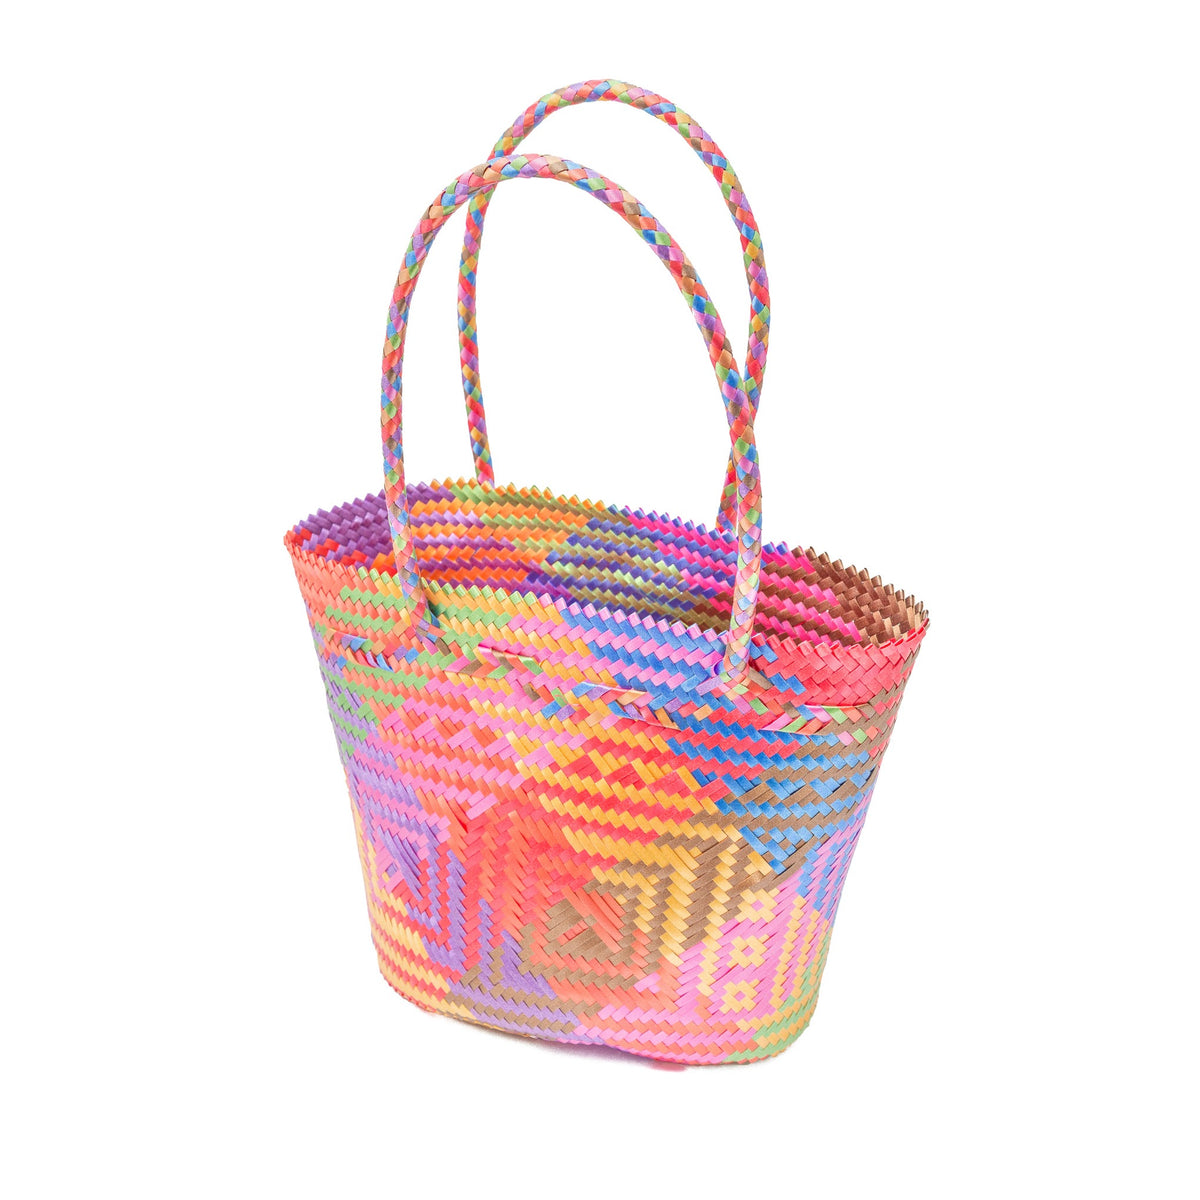 Petite Multicolored Recycled Plastic Tote